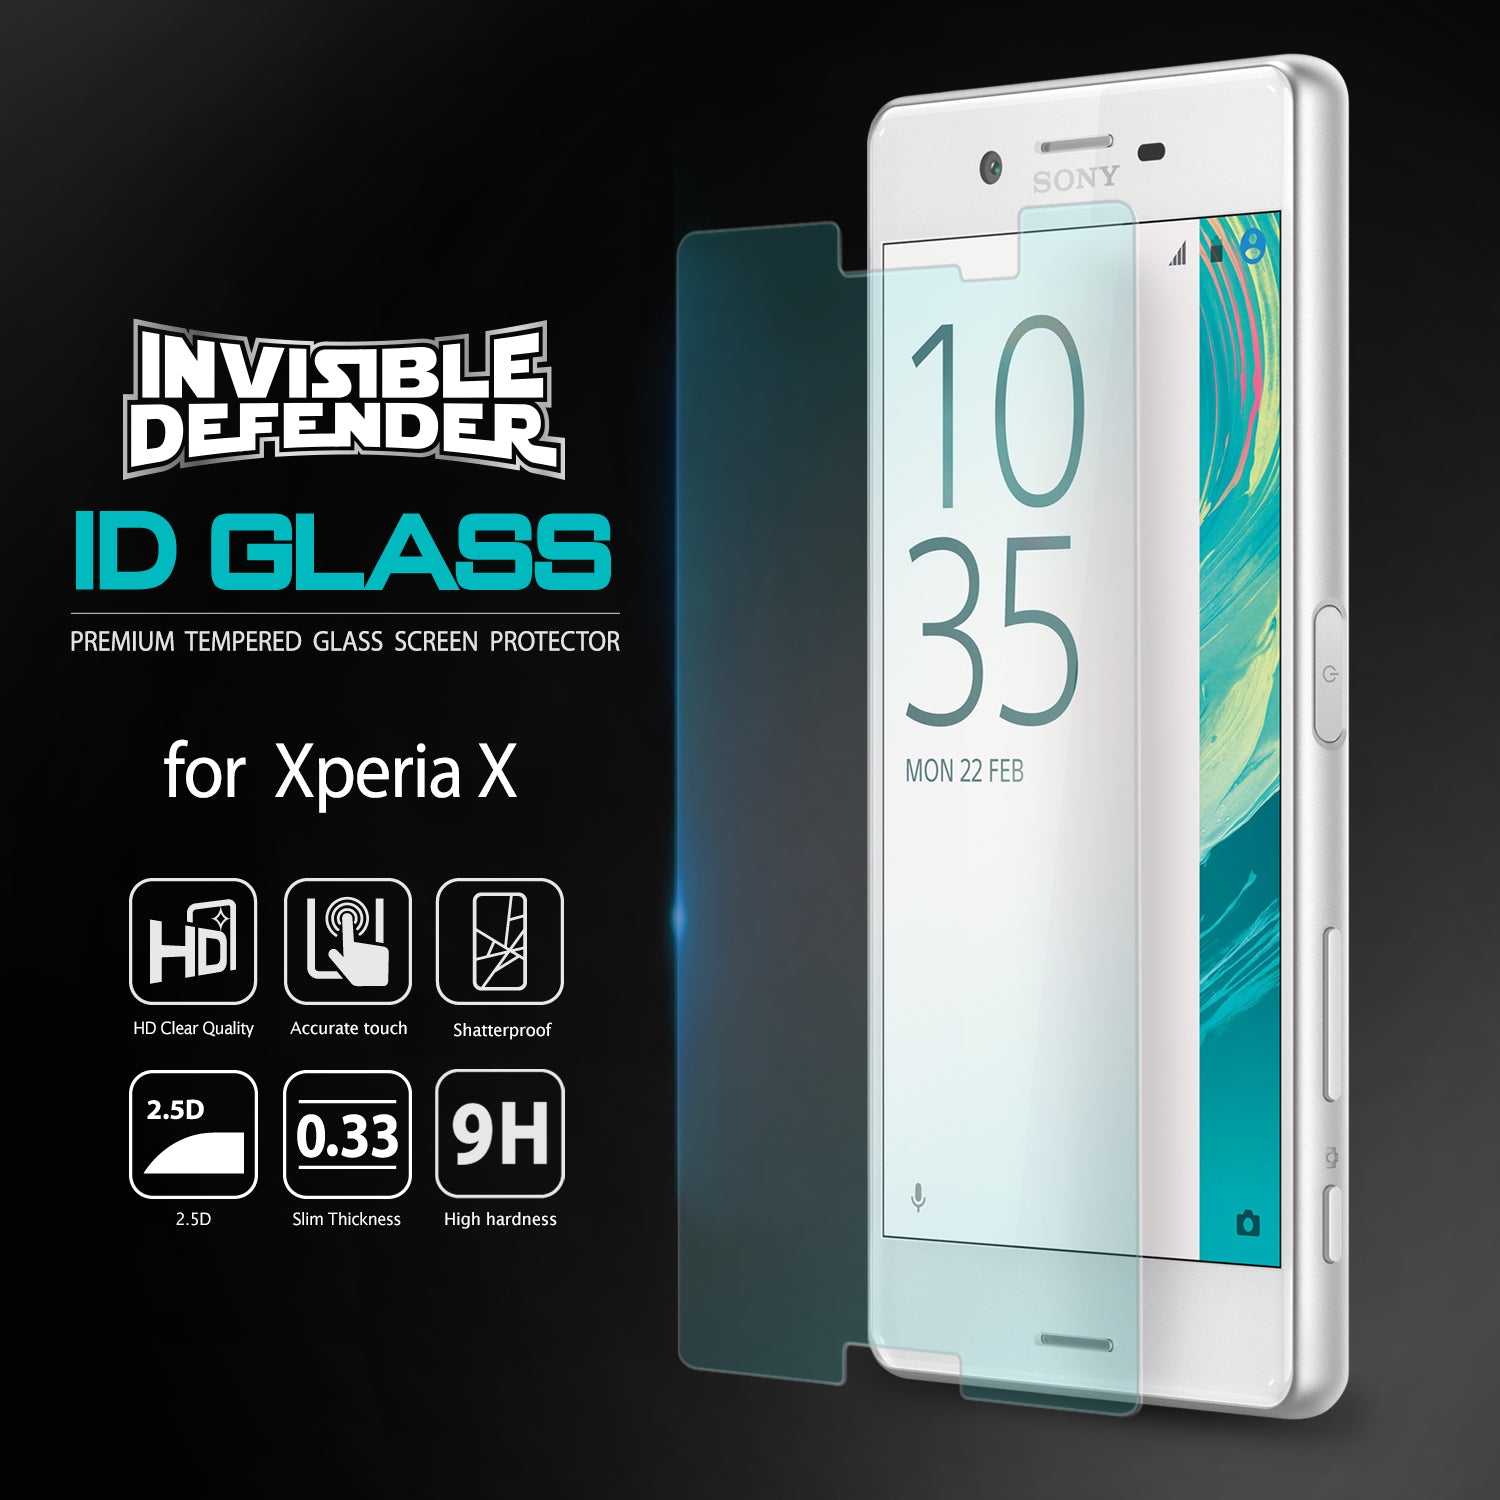 ringke invisible defender glass for xperia x